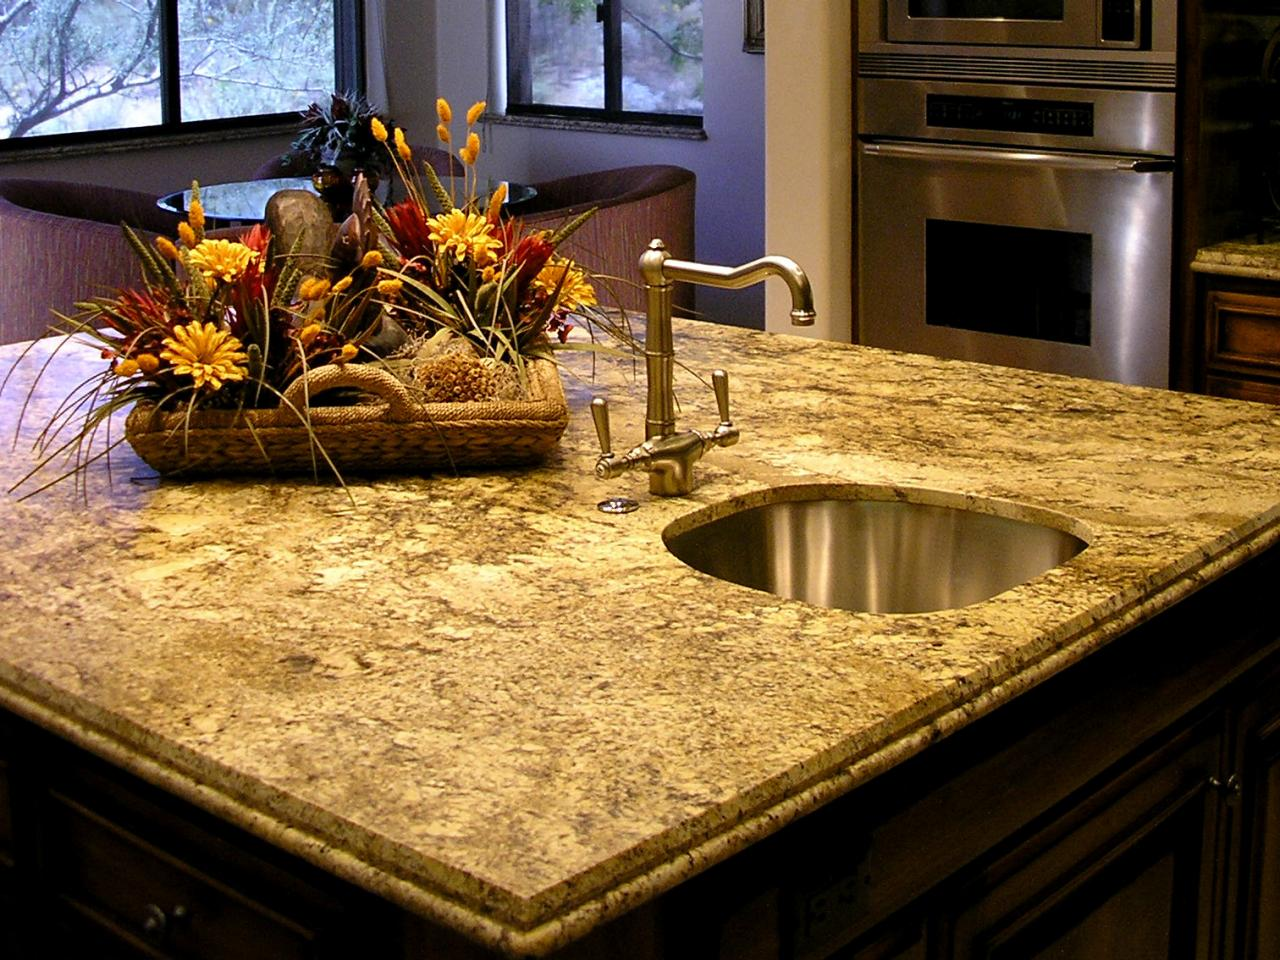 Choosing the right kitchen countertops hgtv for Style kitchen countertops